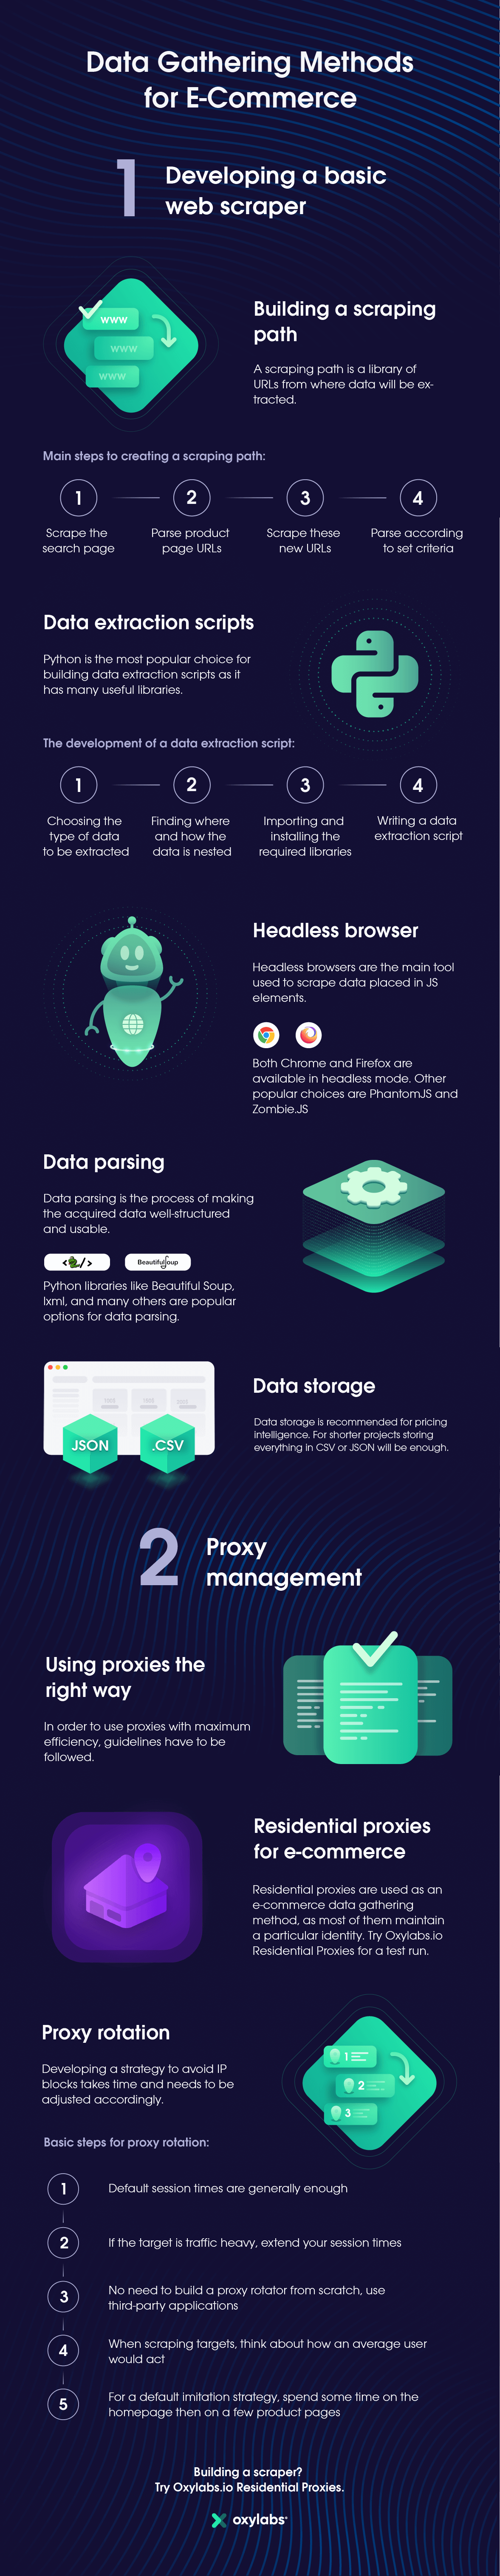 Data Gathering Methods for E-Commerce: Building Web Scrapers & Proxy Managment